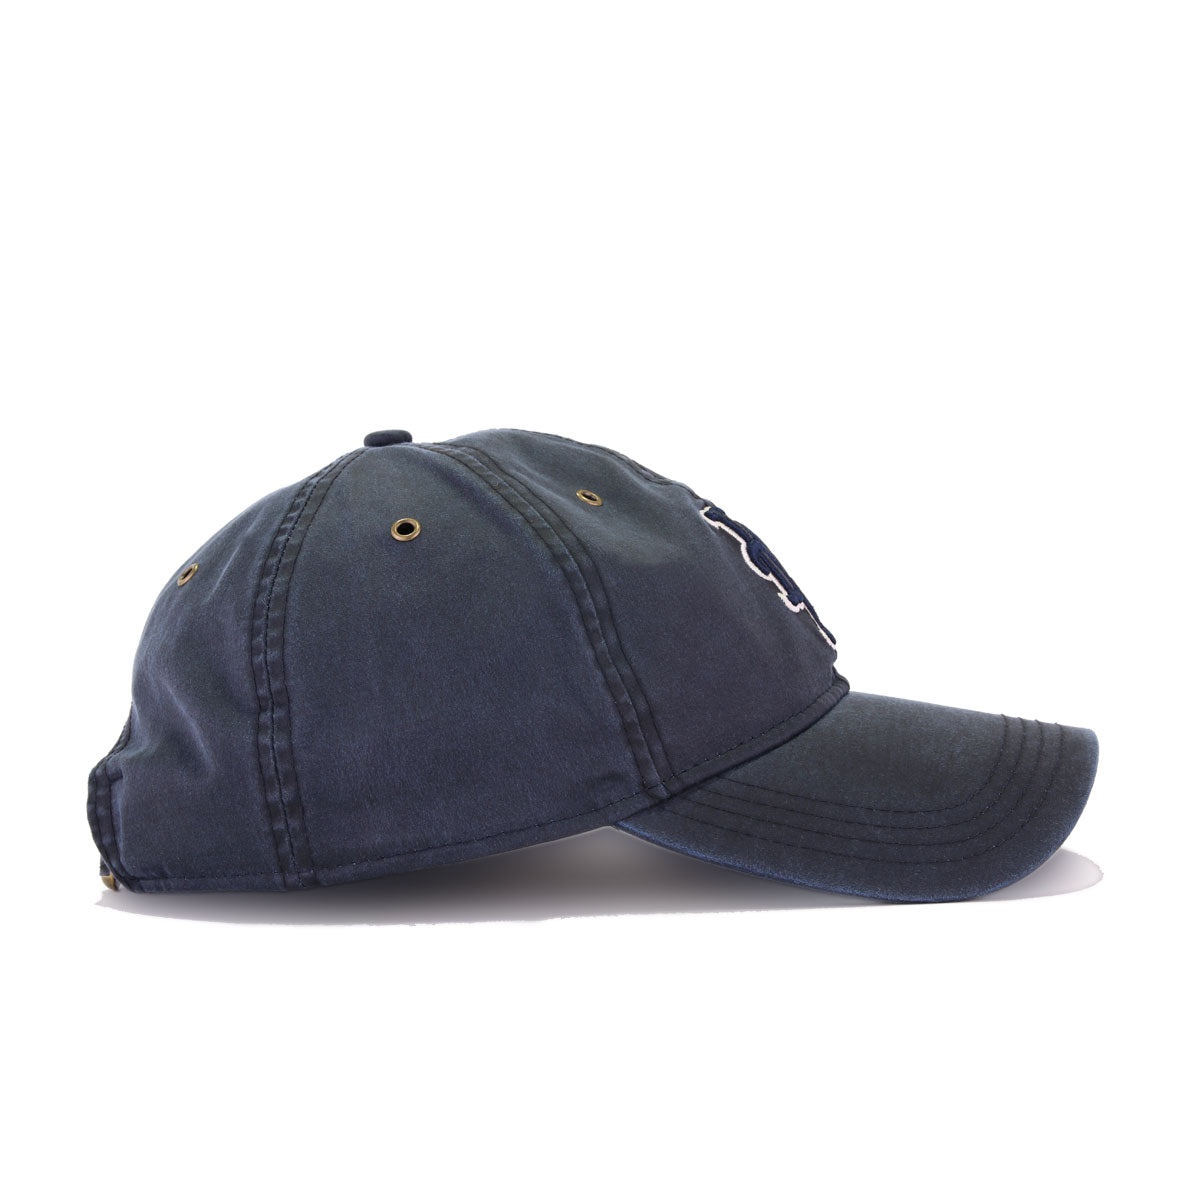 New York Mets Black Label Waxed Navy Cotton New Era 9Twenty Dad Hat